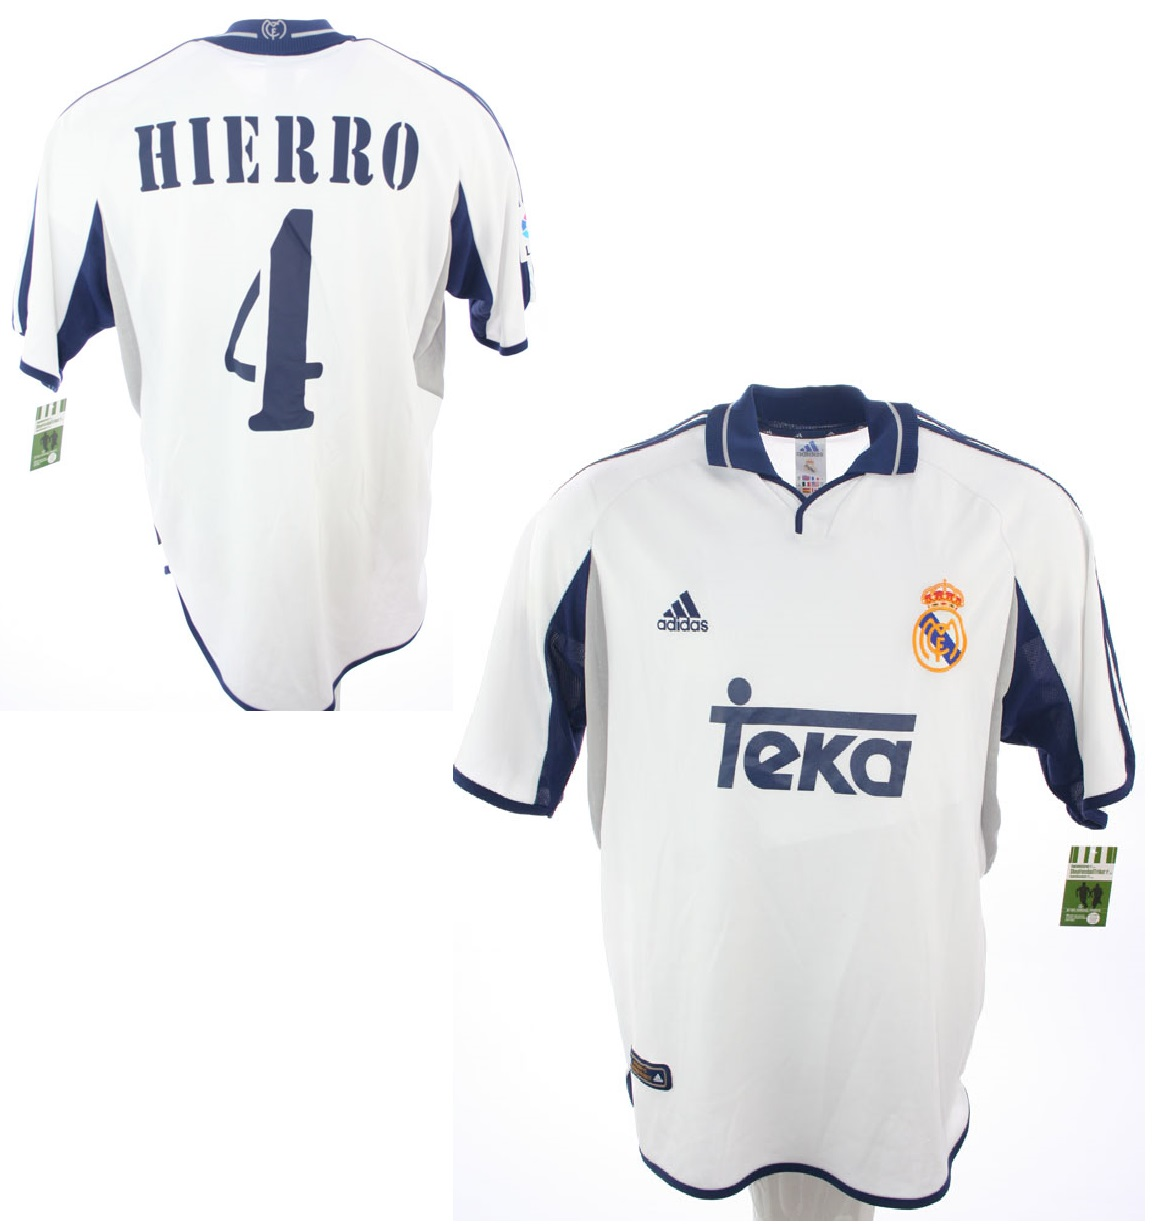 best loved 18d16 85fa8 Adidas Real Madrid Jersey 4 Fernando Hierro 2000/01 home ...